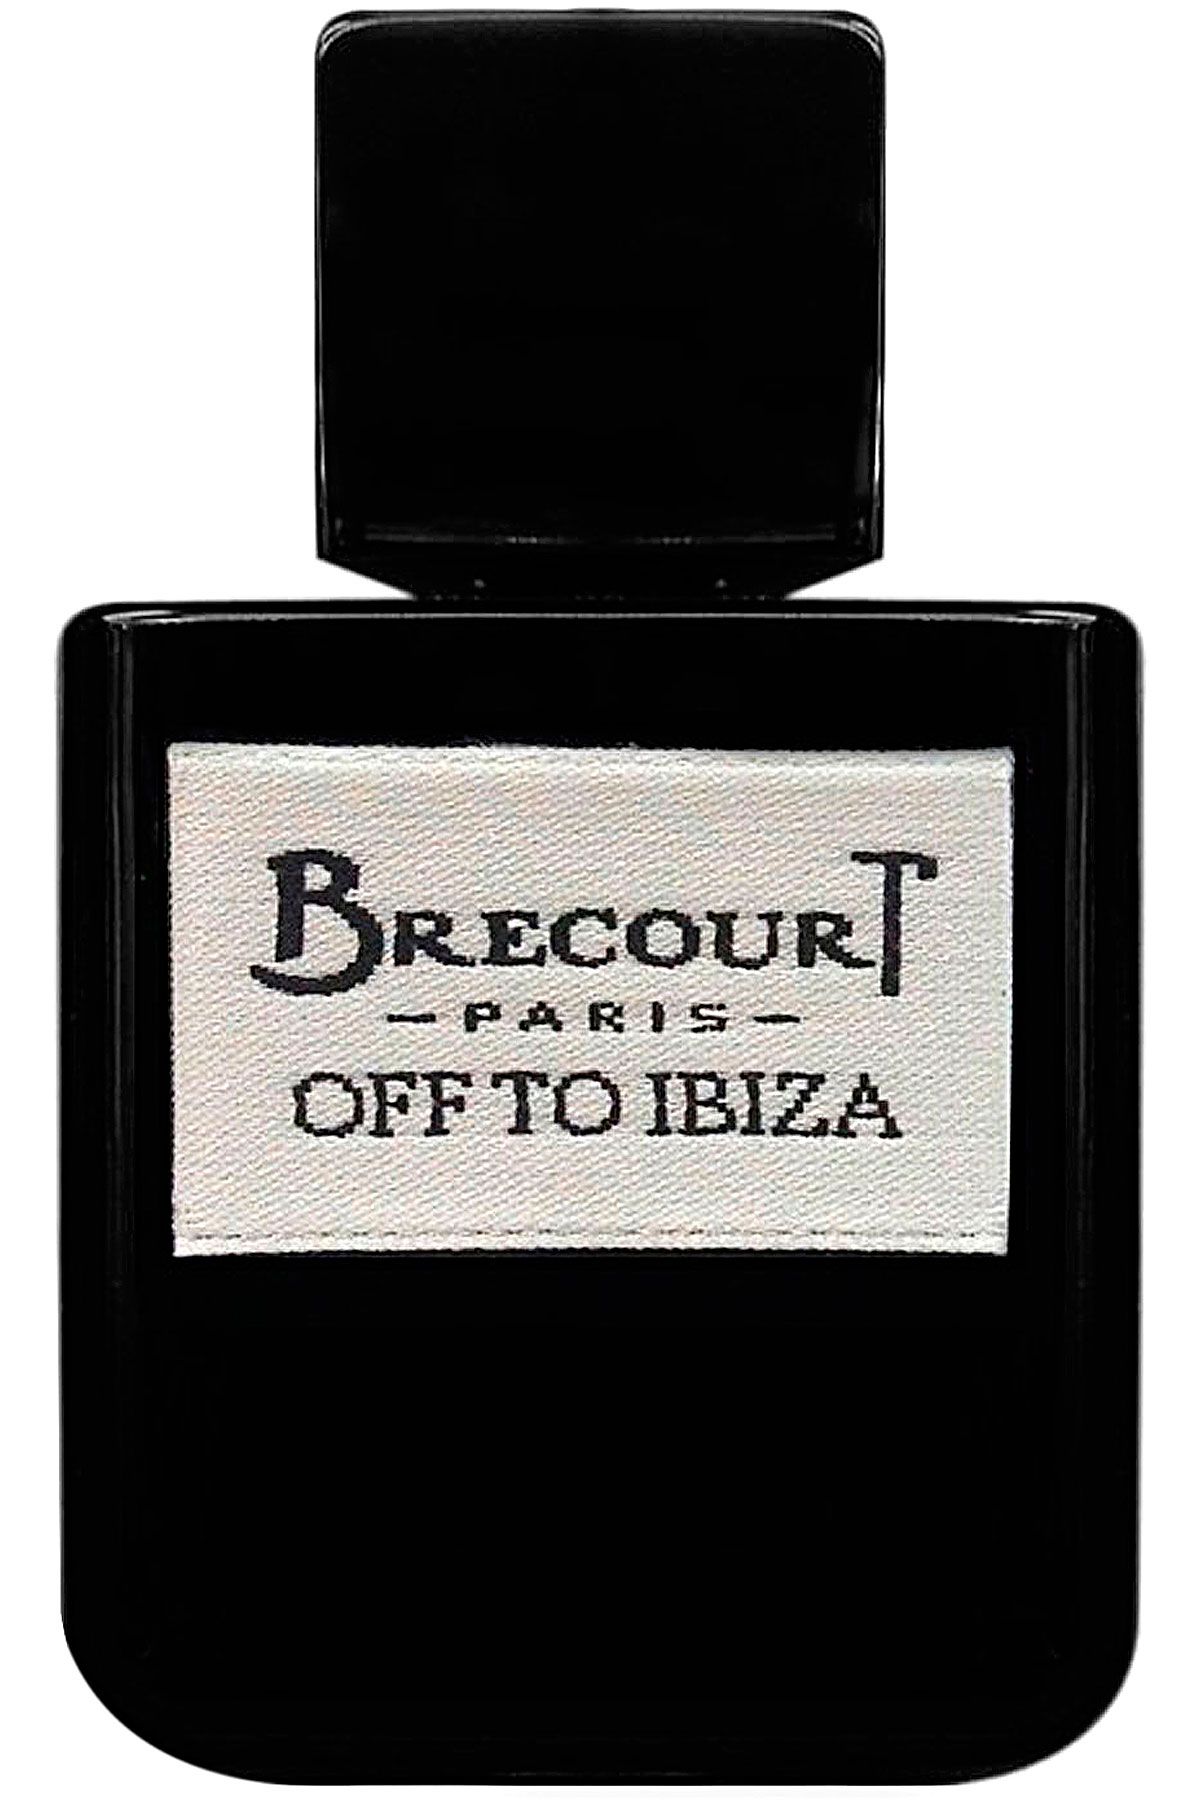 Brecourt Fragrances for Men, Off To Ibiza Eau De Parfum 50 Ml, 2019, 50 ml